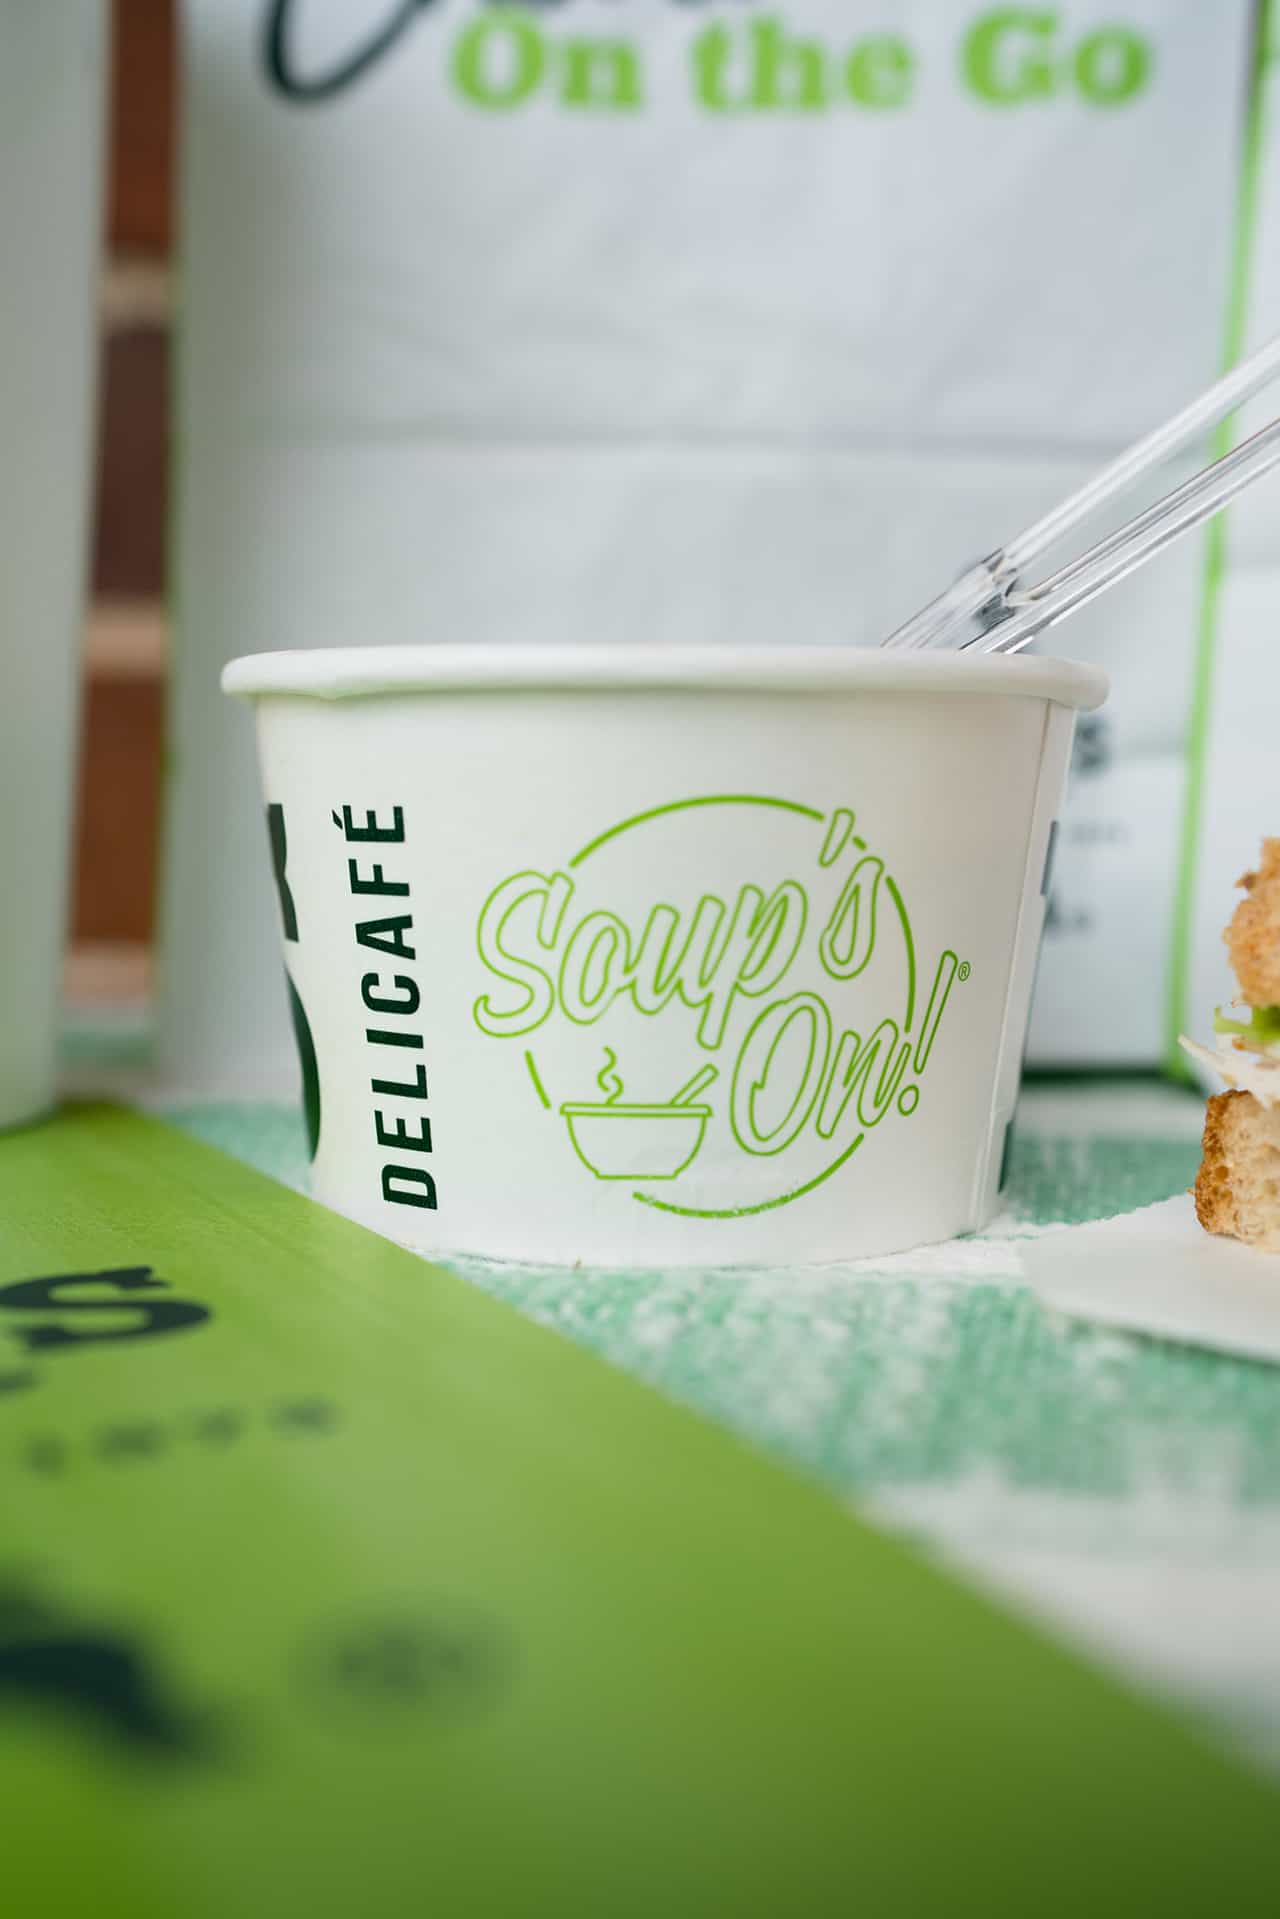 Erik's DeliCafé rebranding design takeout packaging design soup